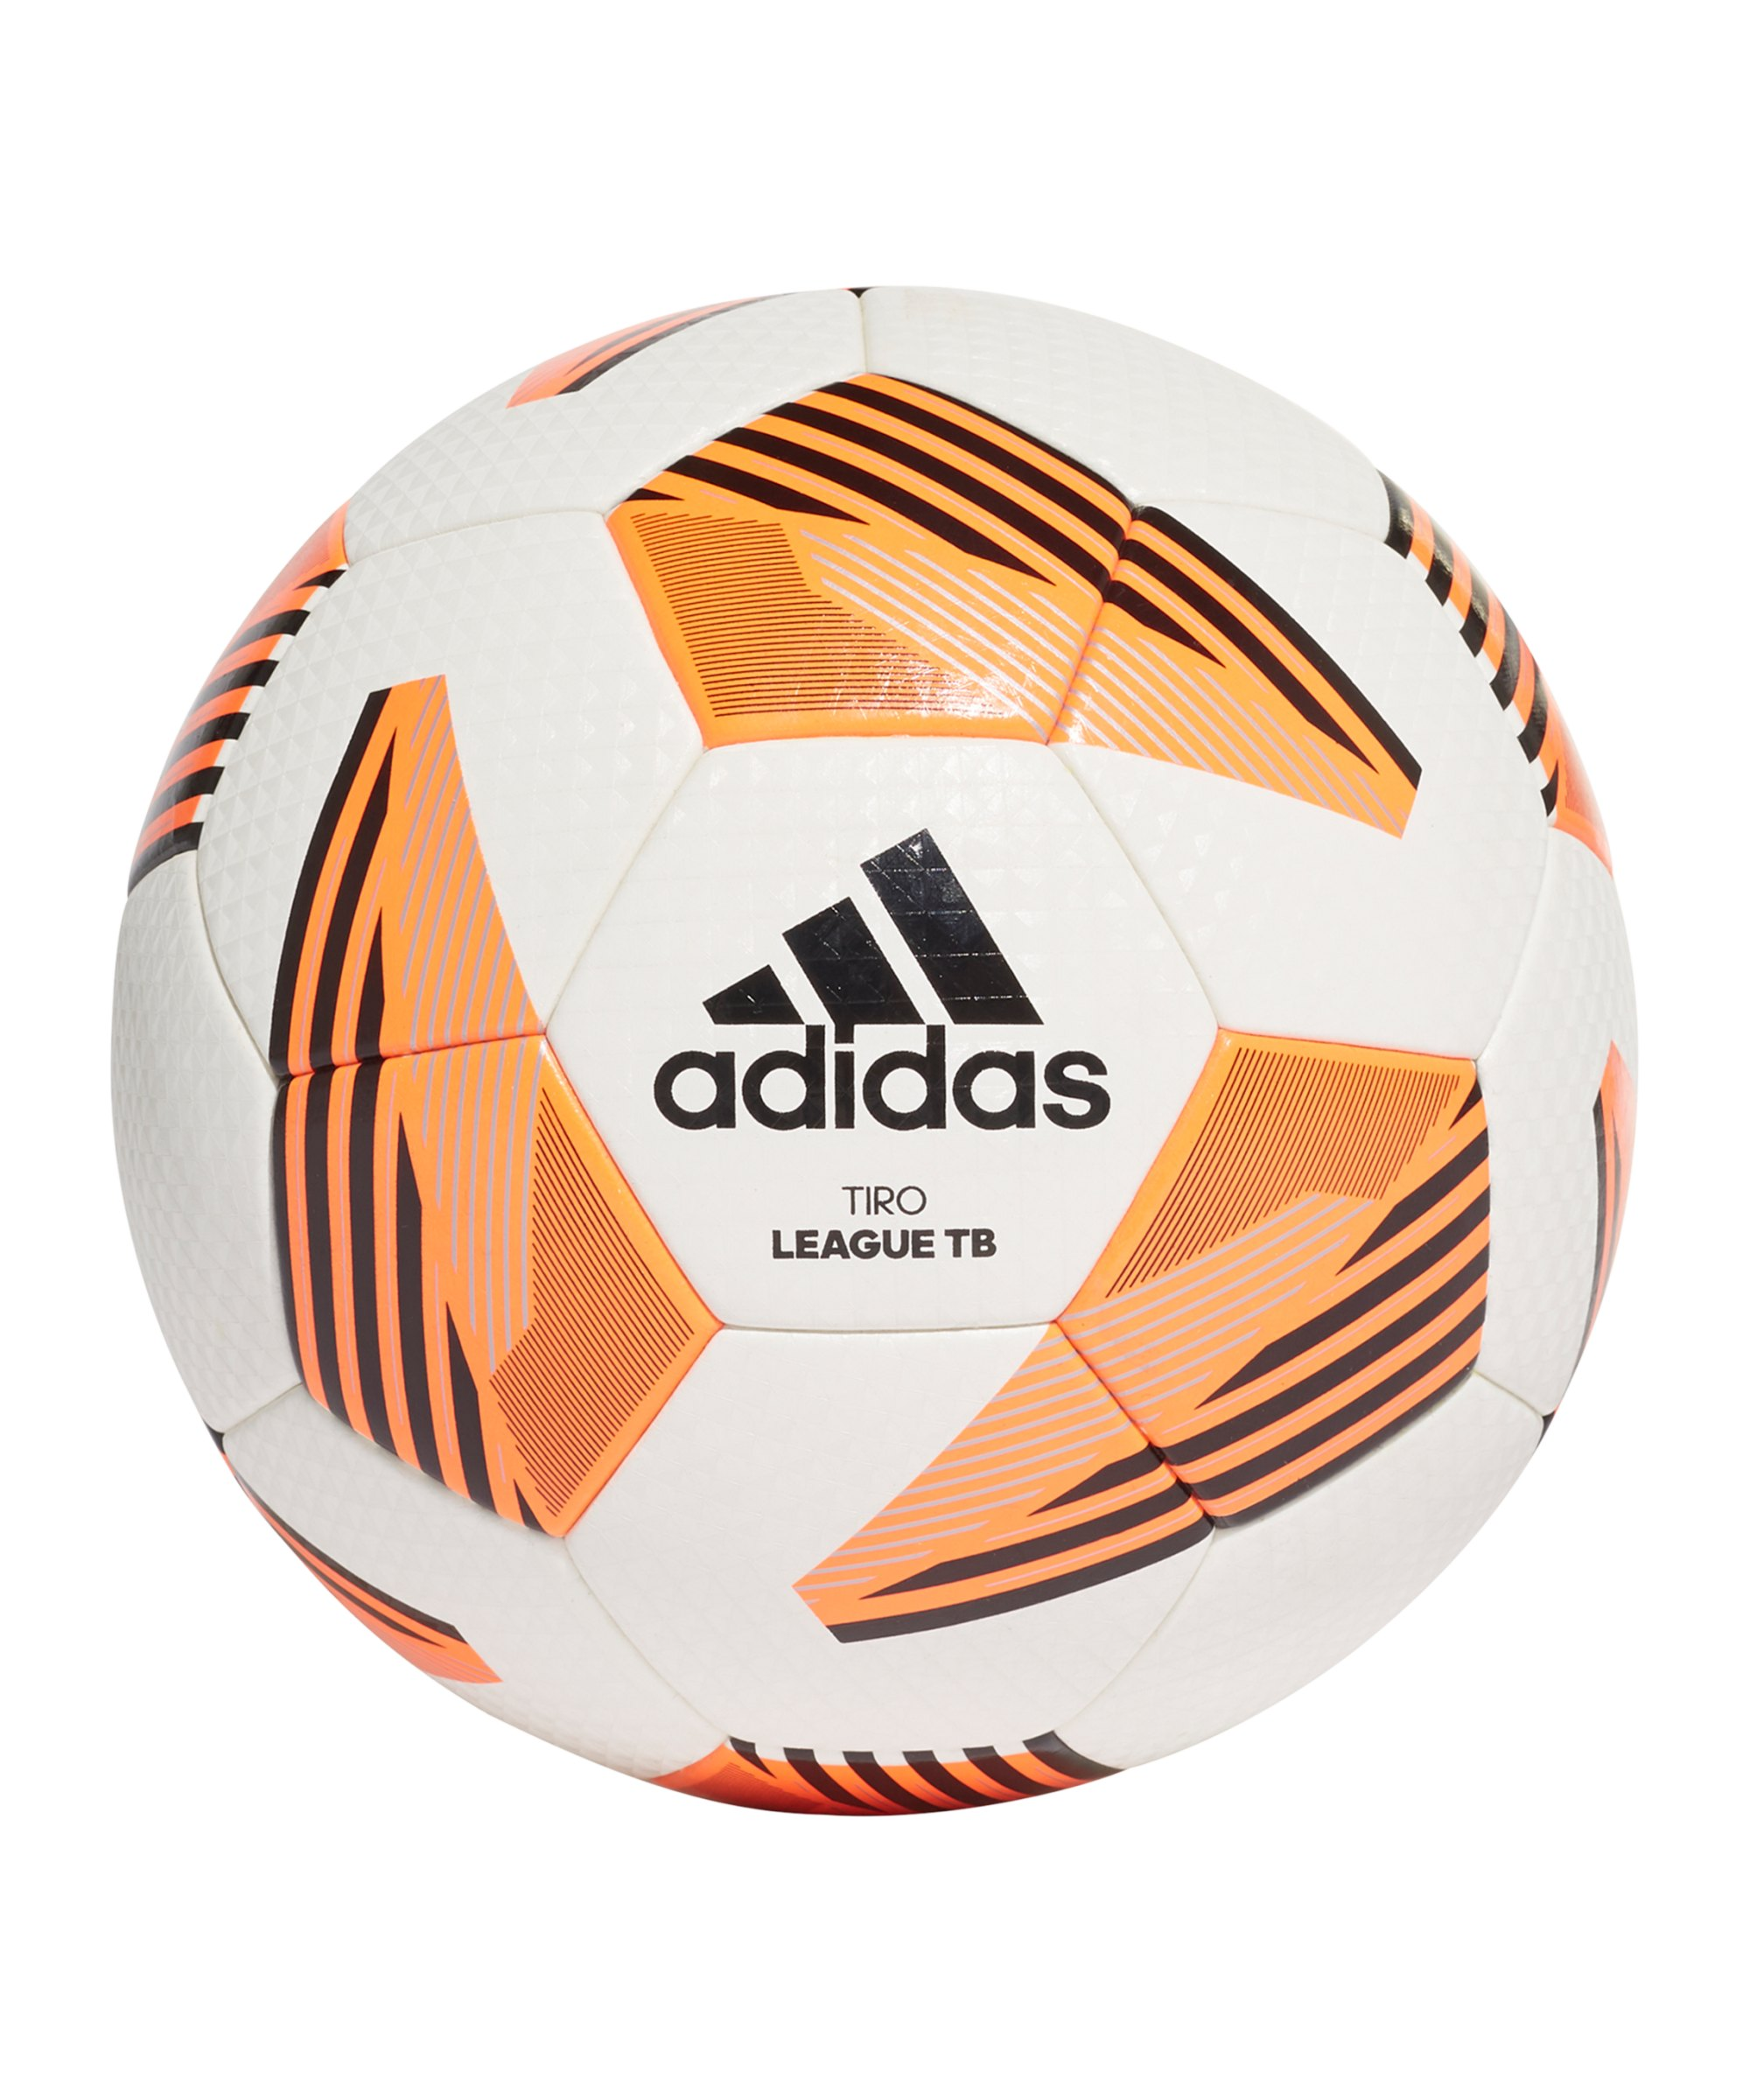 adidas Tiro League Trainingsball Weiss Orange - weiss